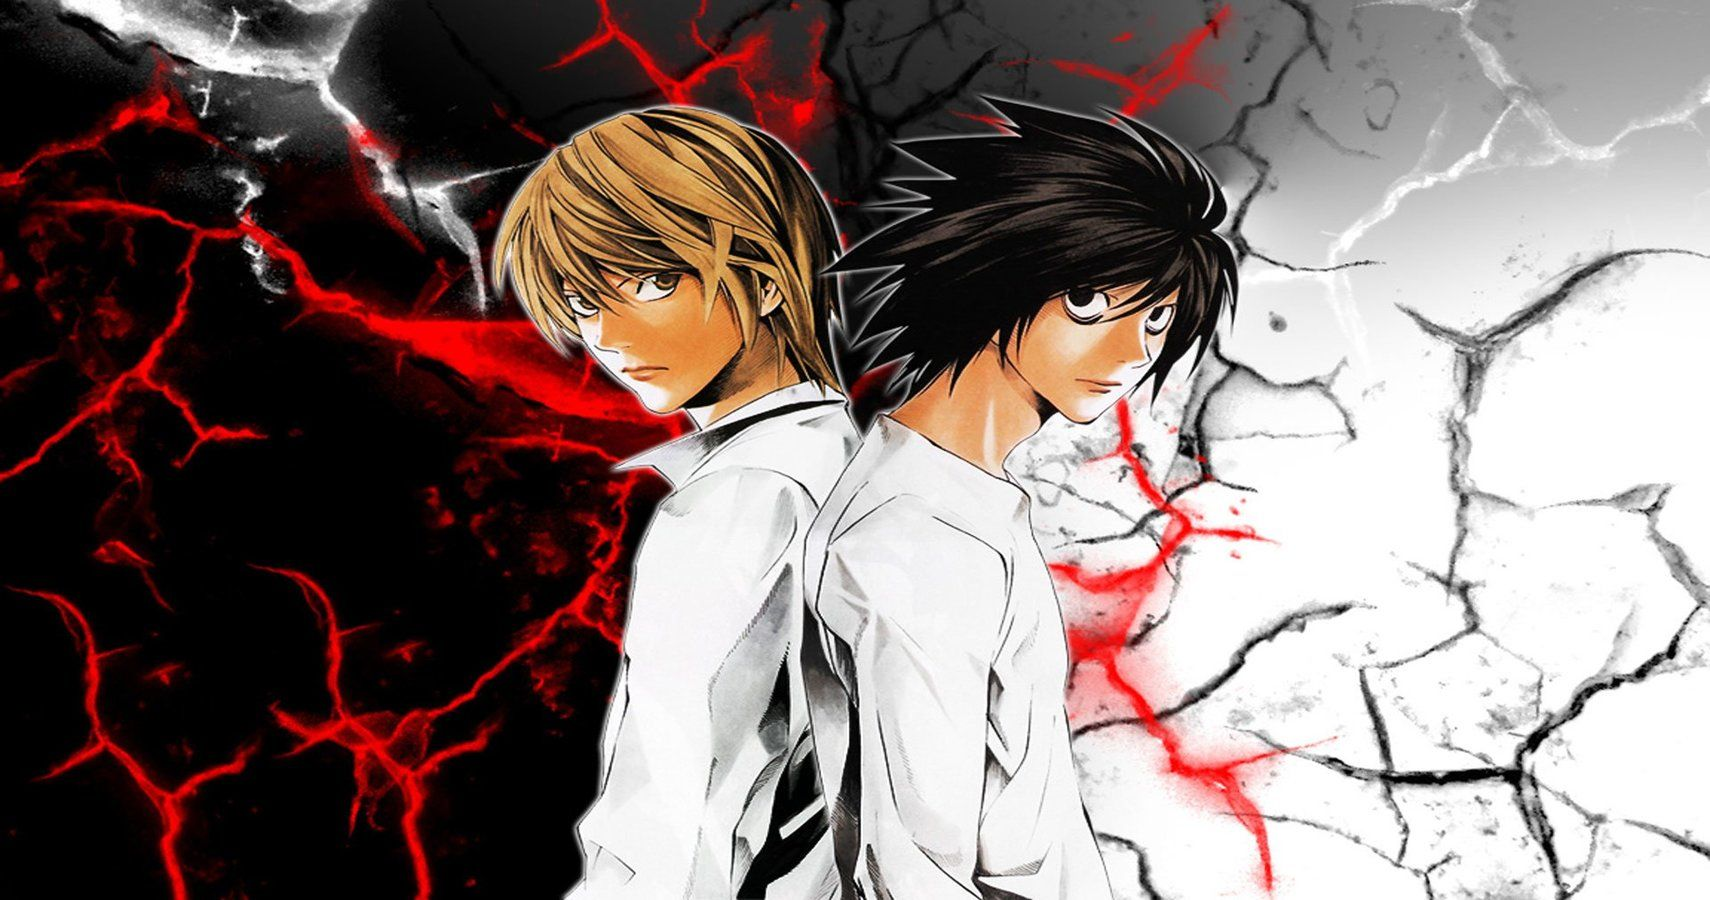 Death note full anime